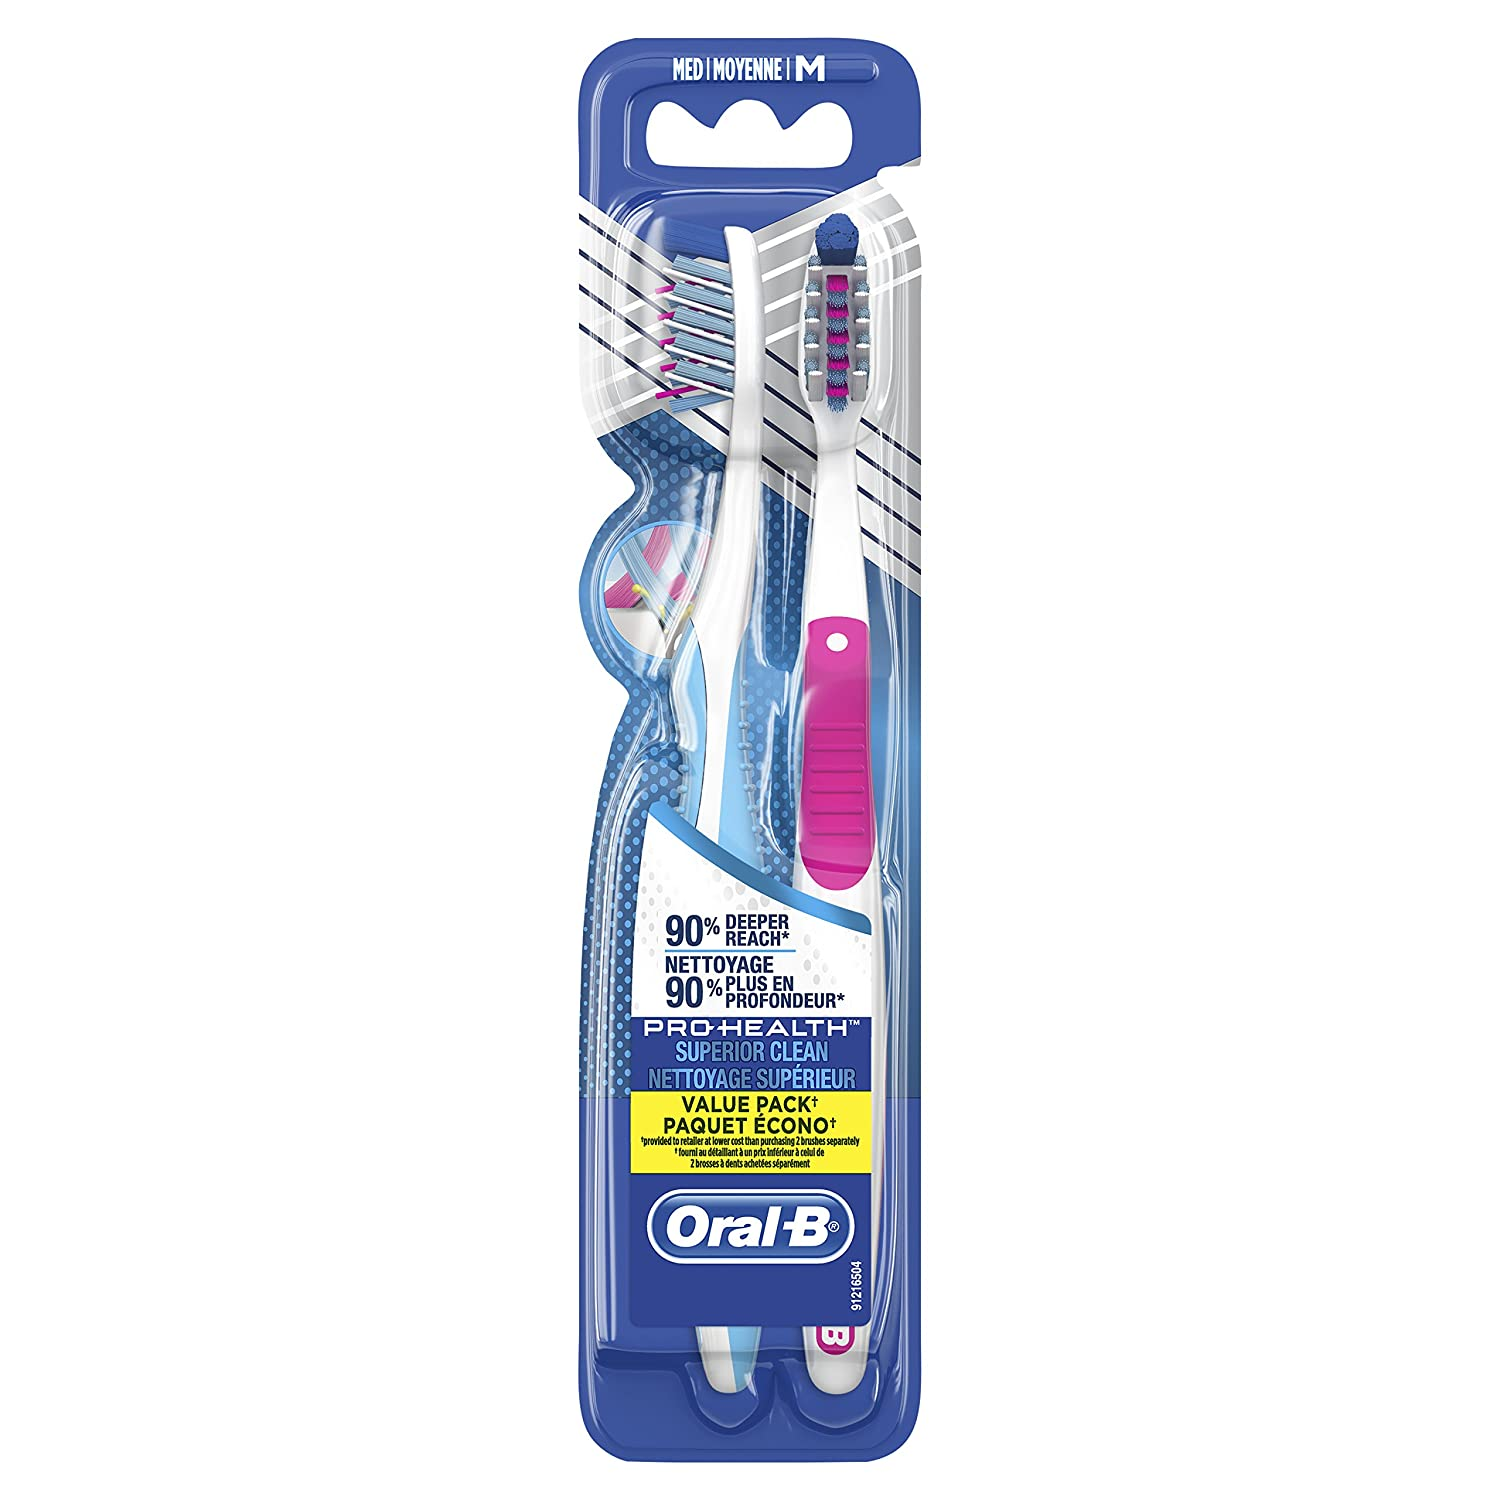 Oral-B Pro-Health Superior Clean Manual Toothbrush, 2 Count, 40 Med Procter and Gamble